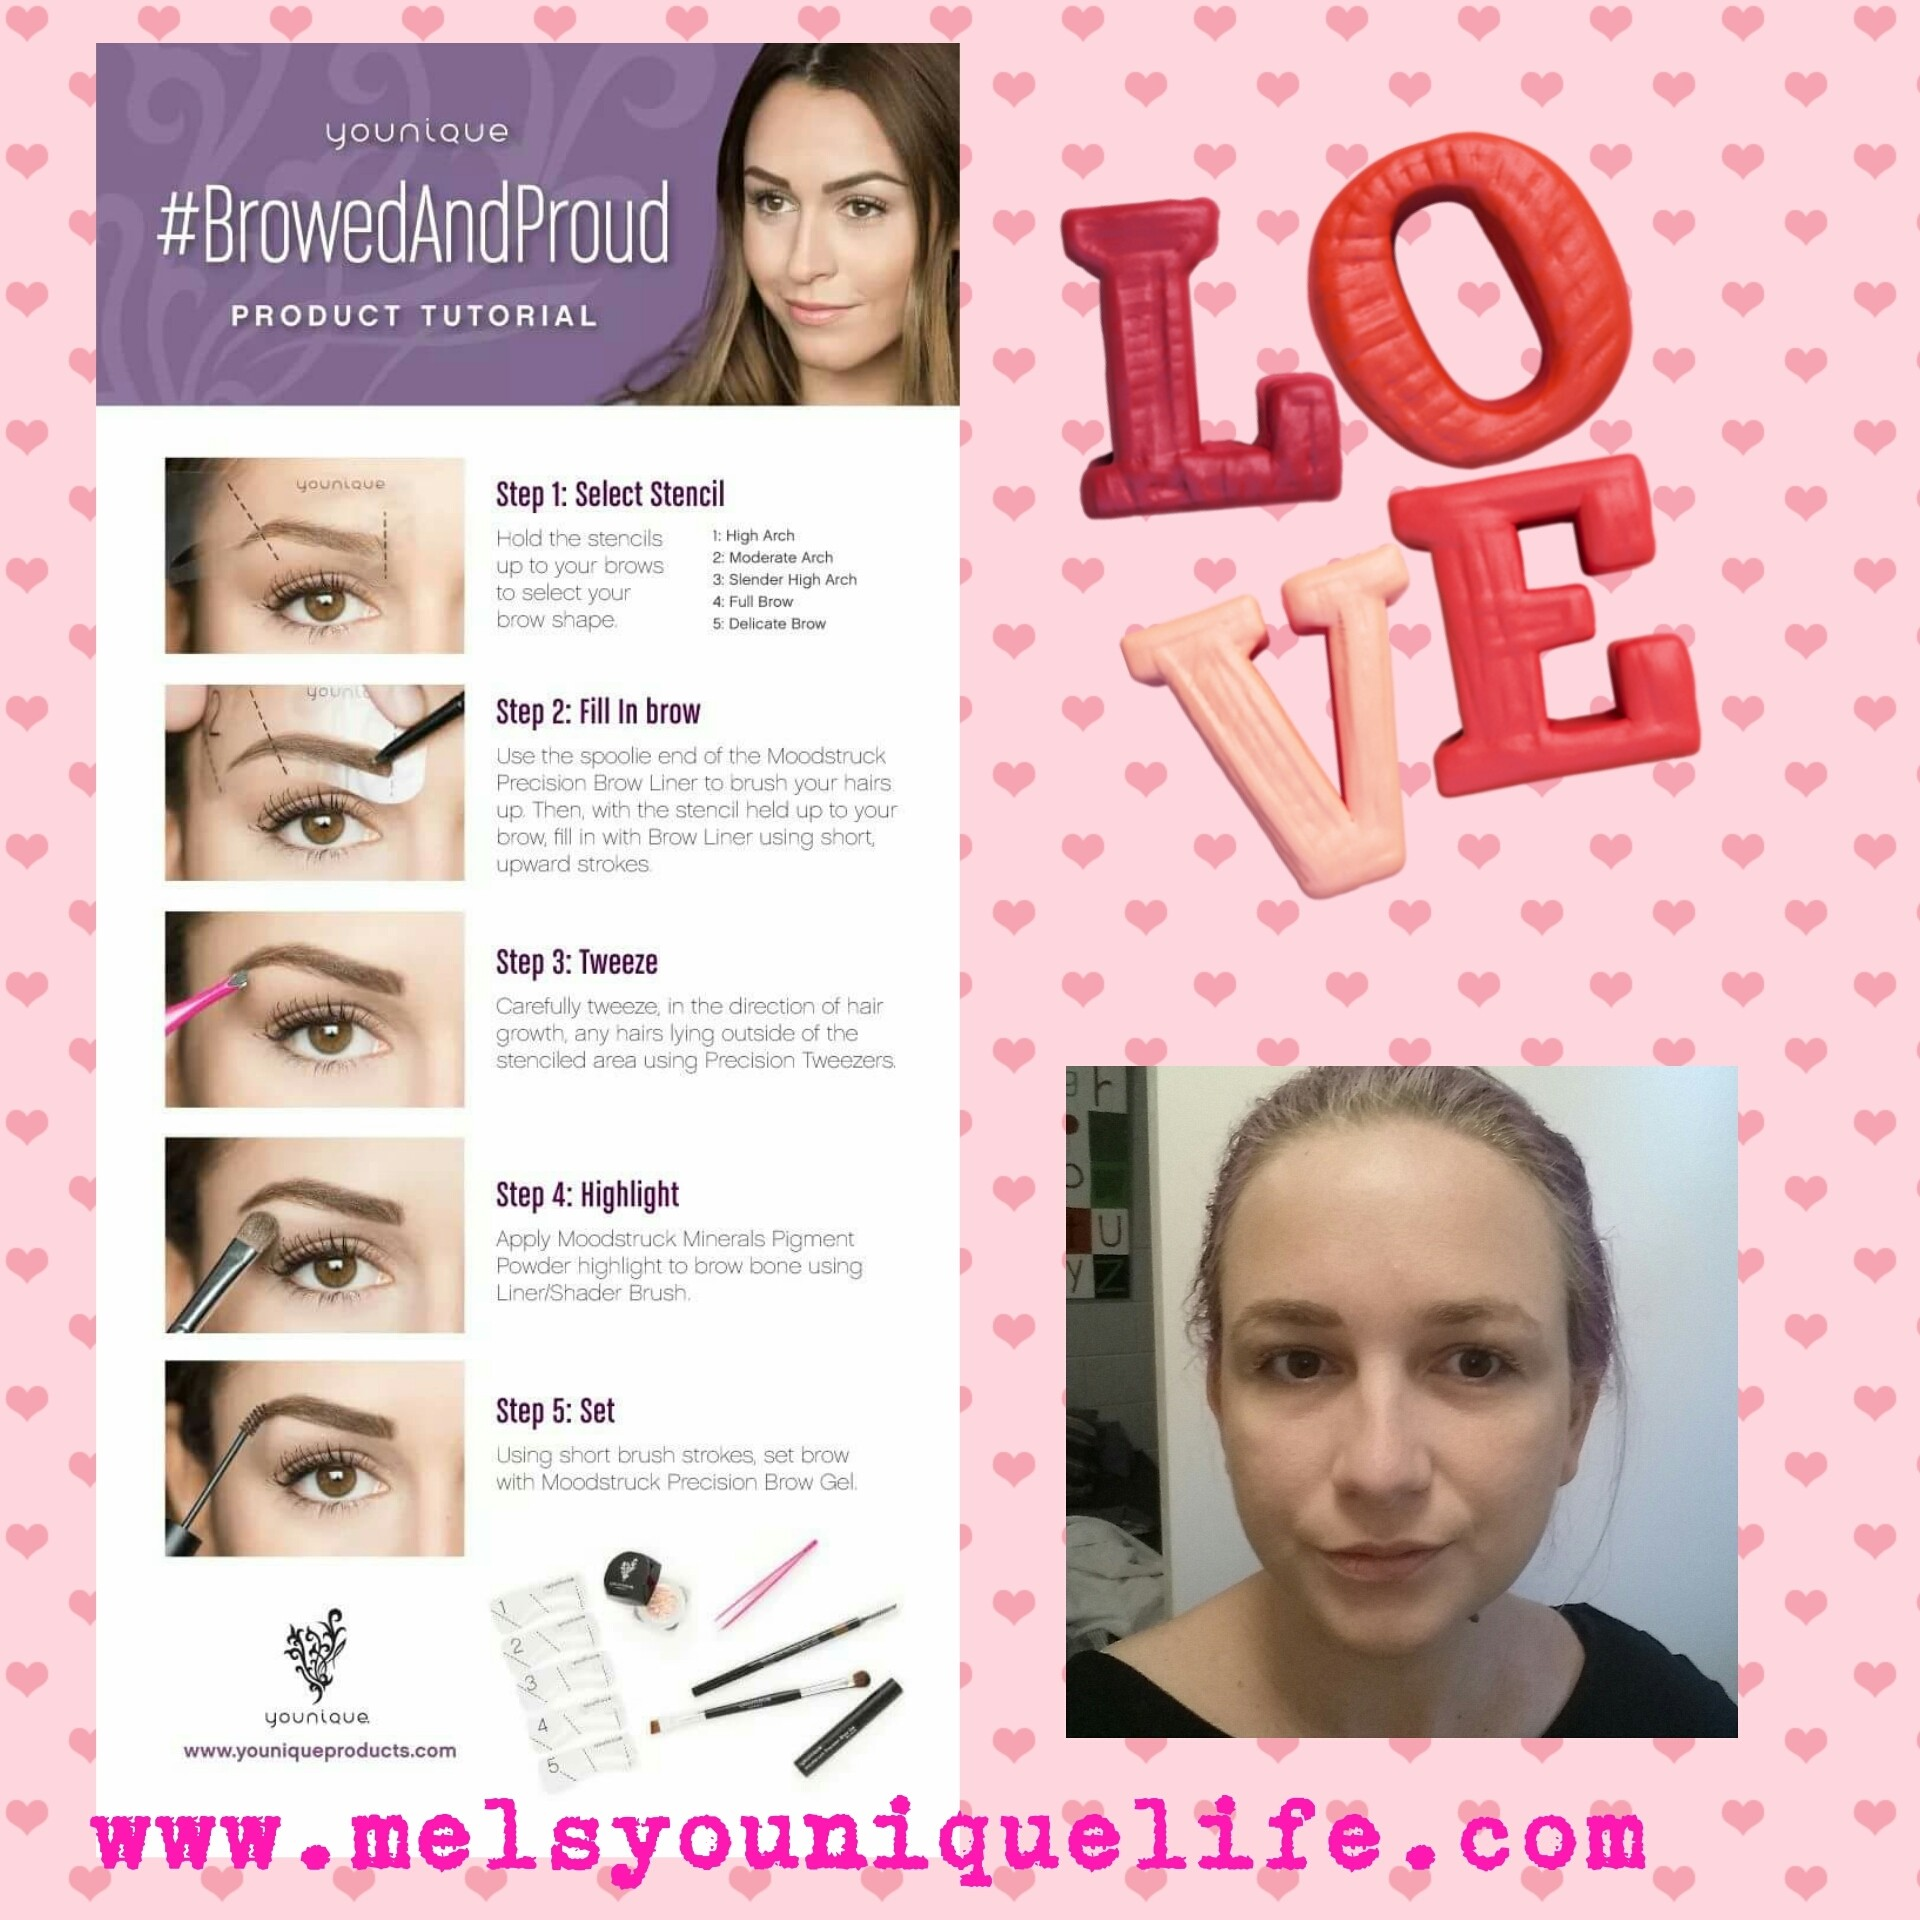 Gotta get them brows tamed... Get #BrowedAndProud with this months special! LOVE LOVE LOVE! www.melsyouniquelife.com to get yours now before they dissappear